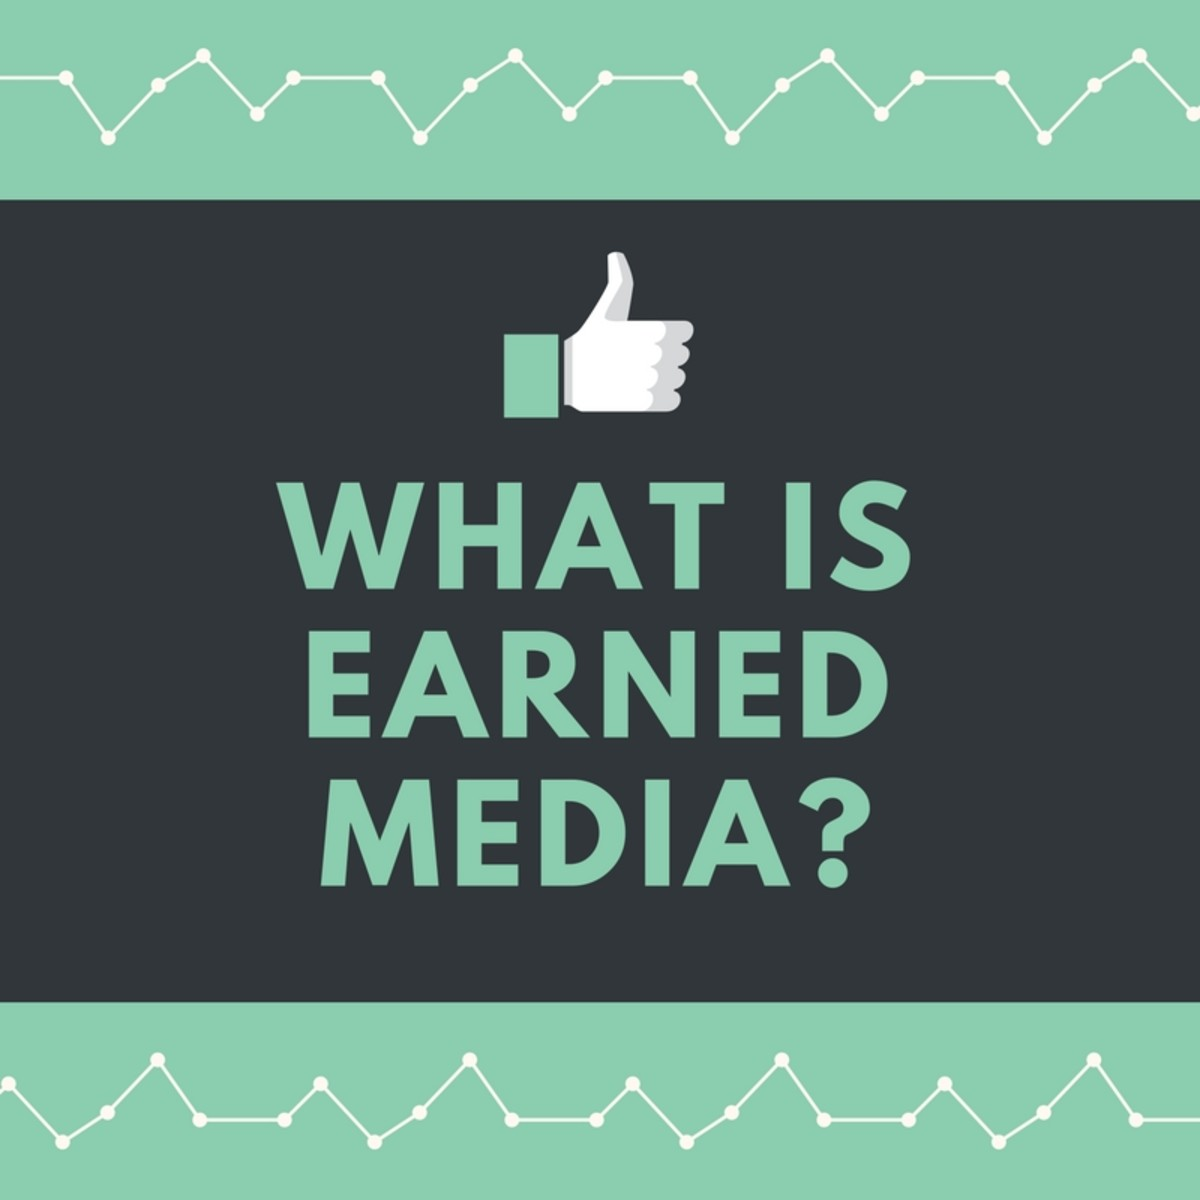 What Is Earned Media?